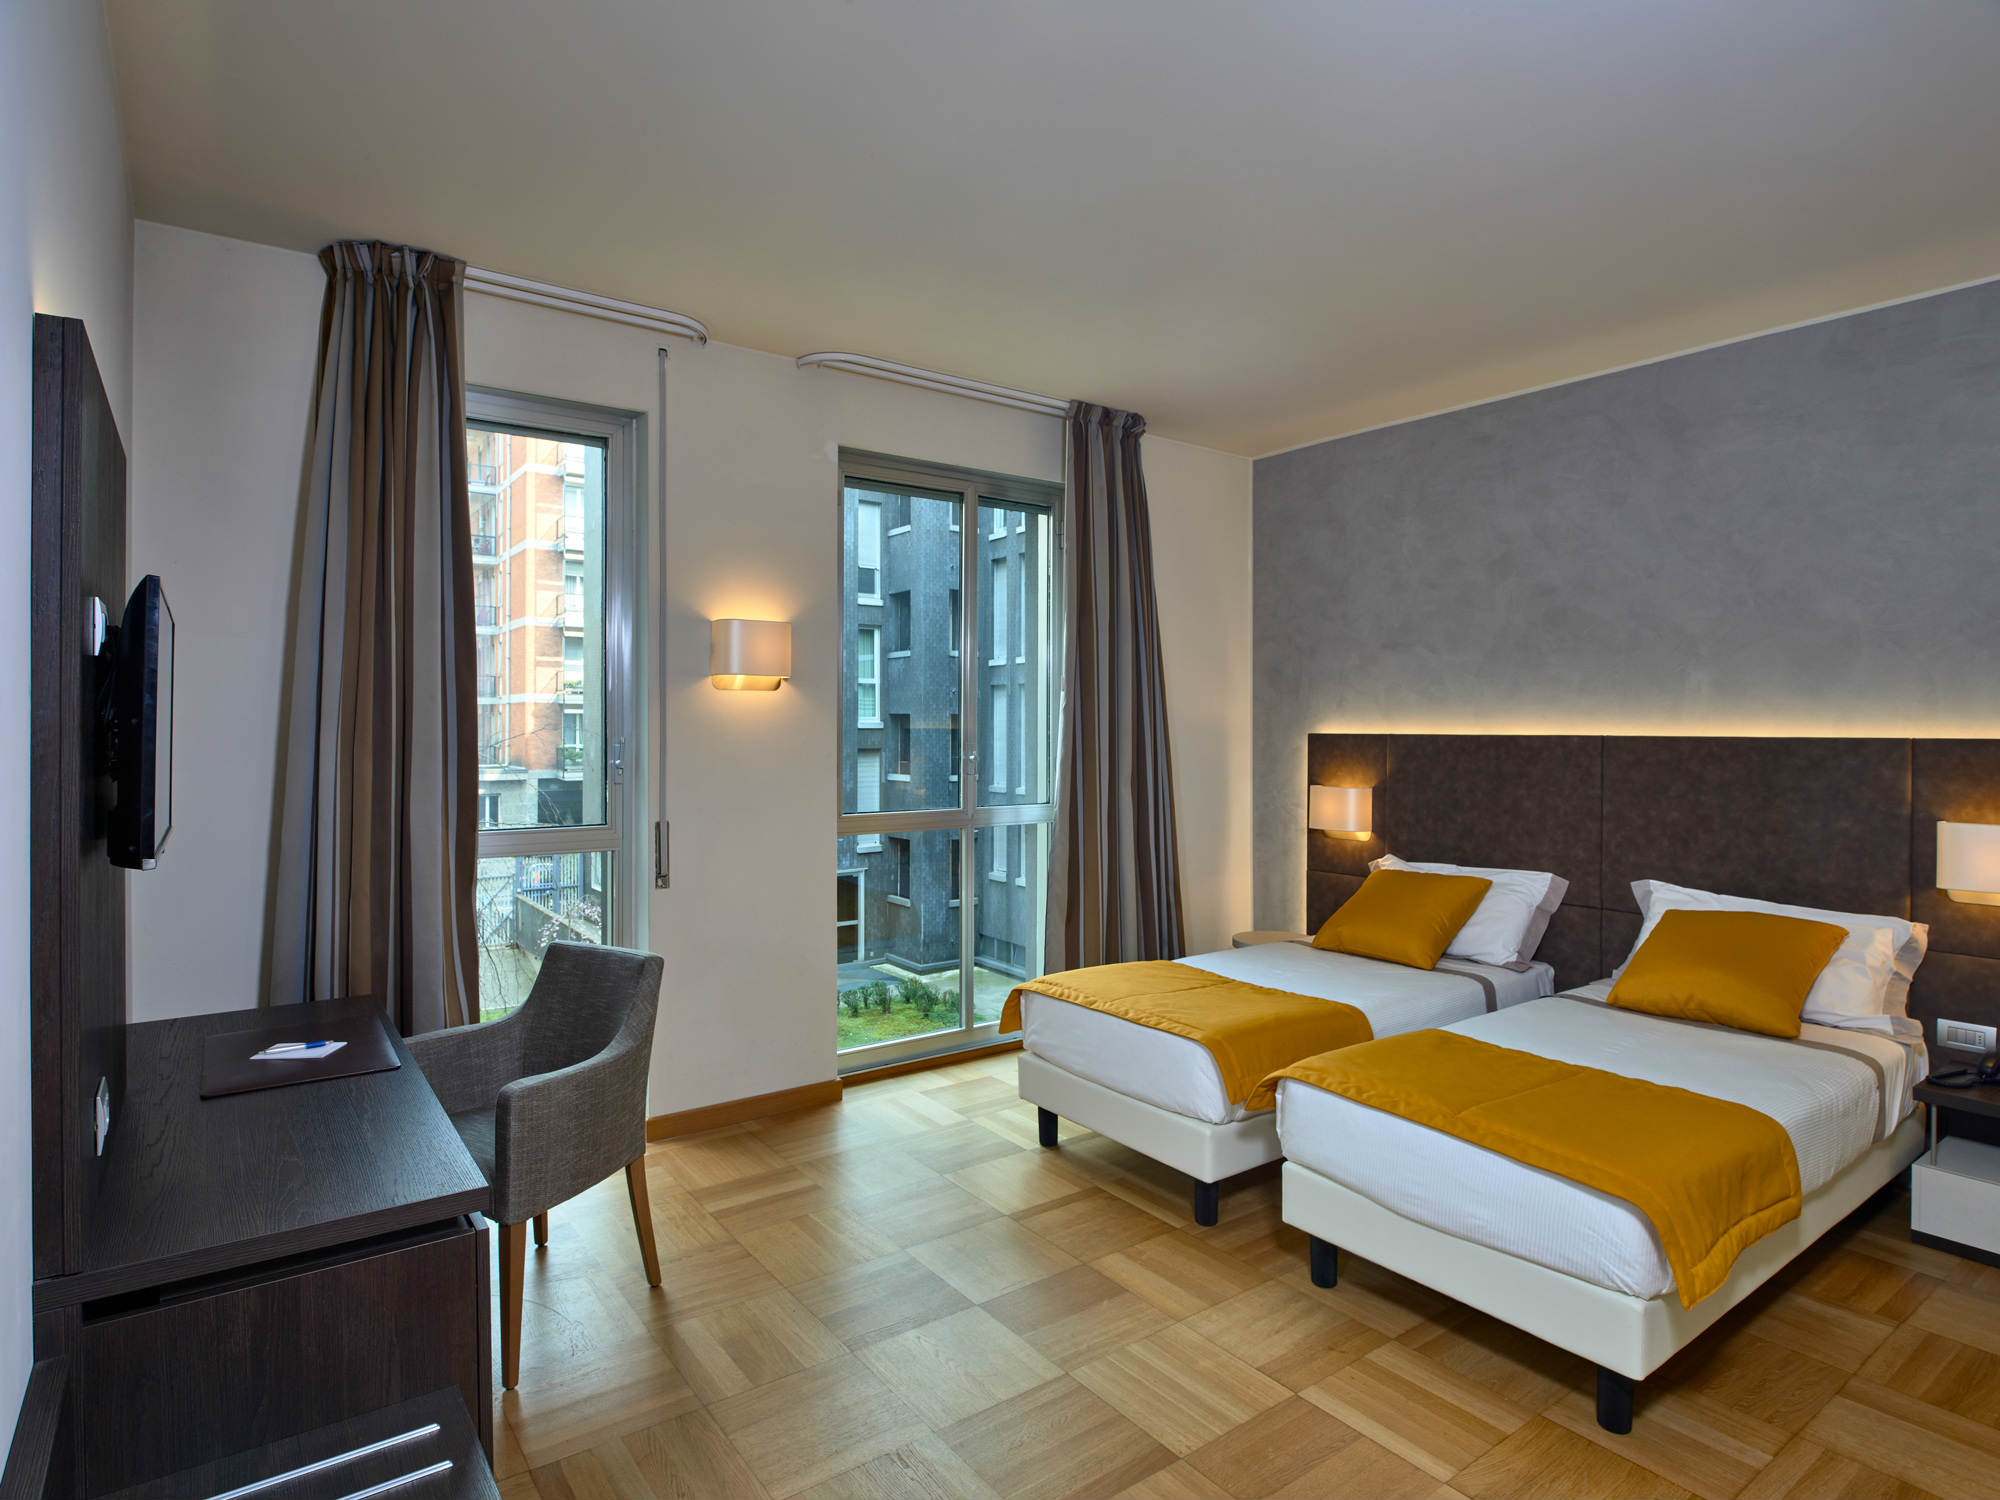 Double Room  Hotel Como  4 stars hotel  Lake Como